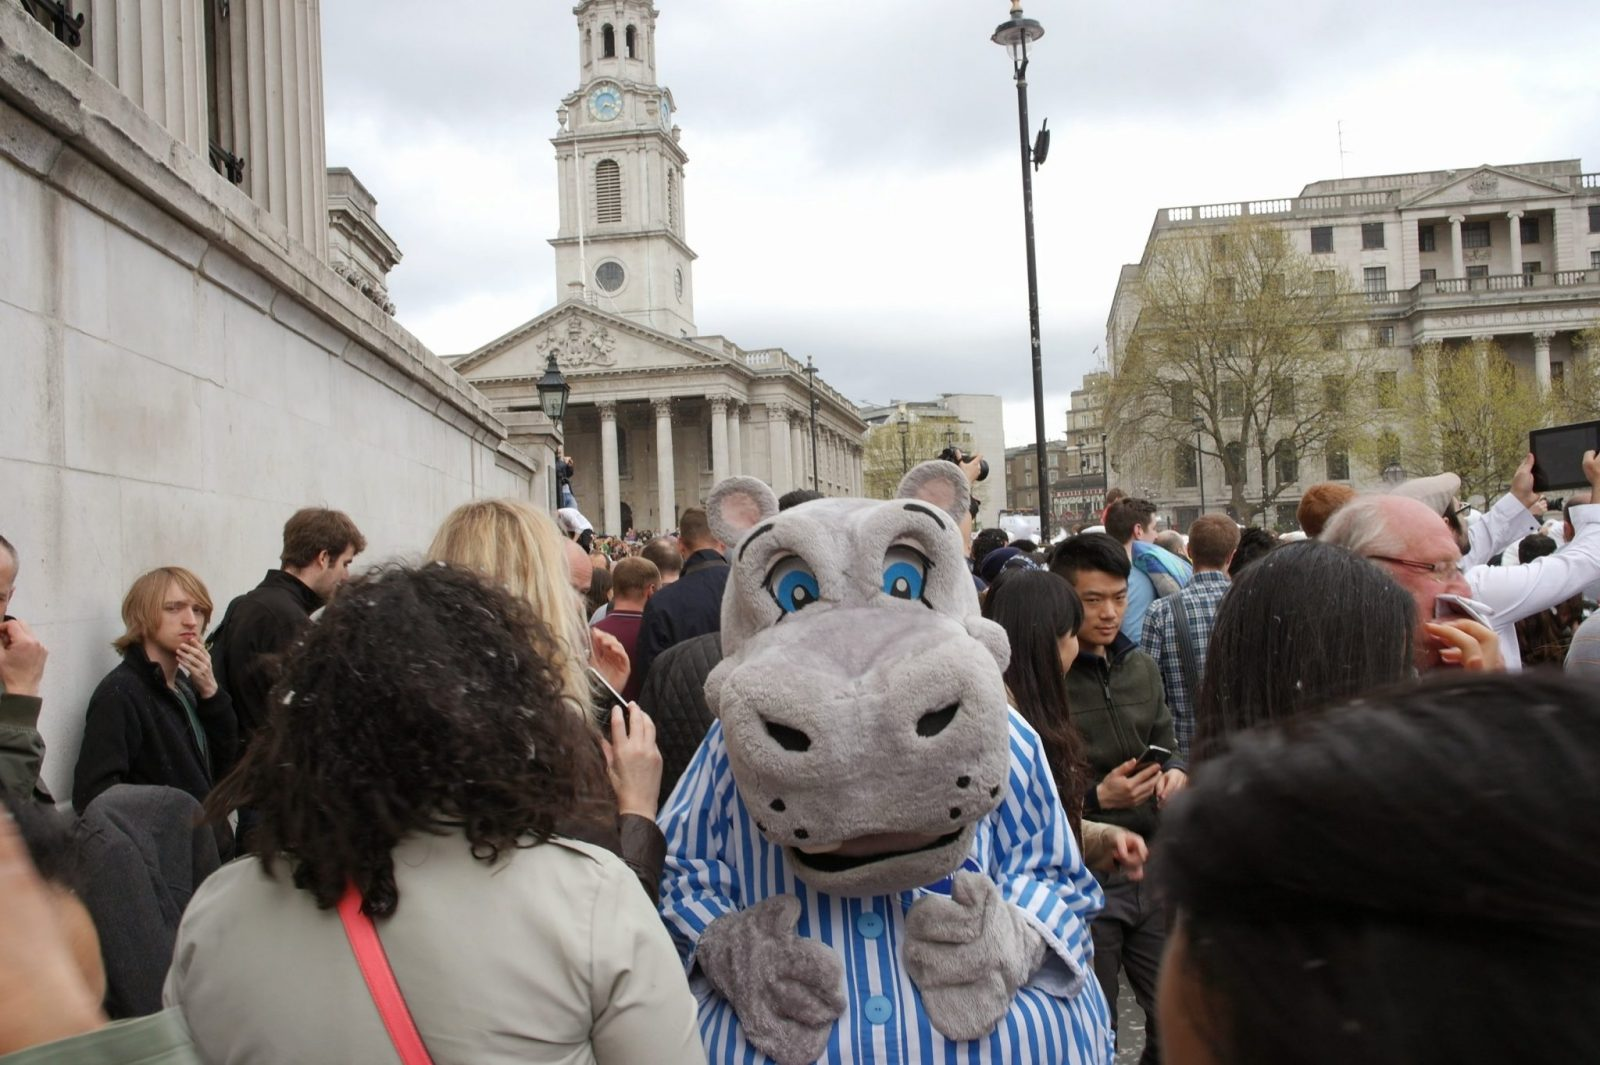 10 Fun Facts & Stories Behind Trafalgar Square 1